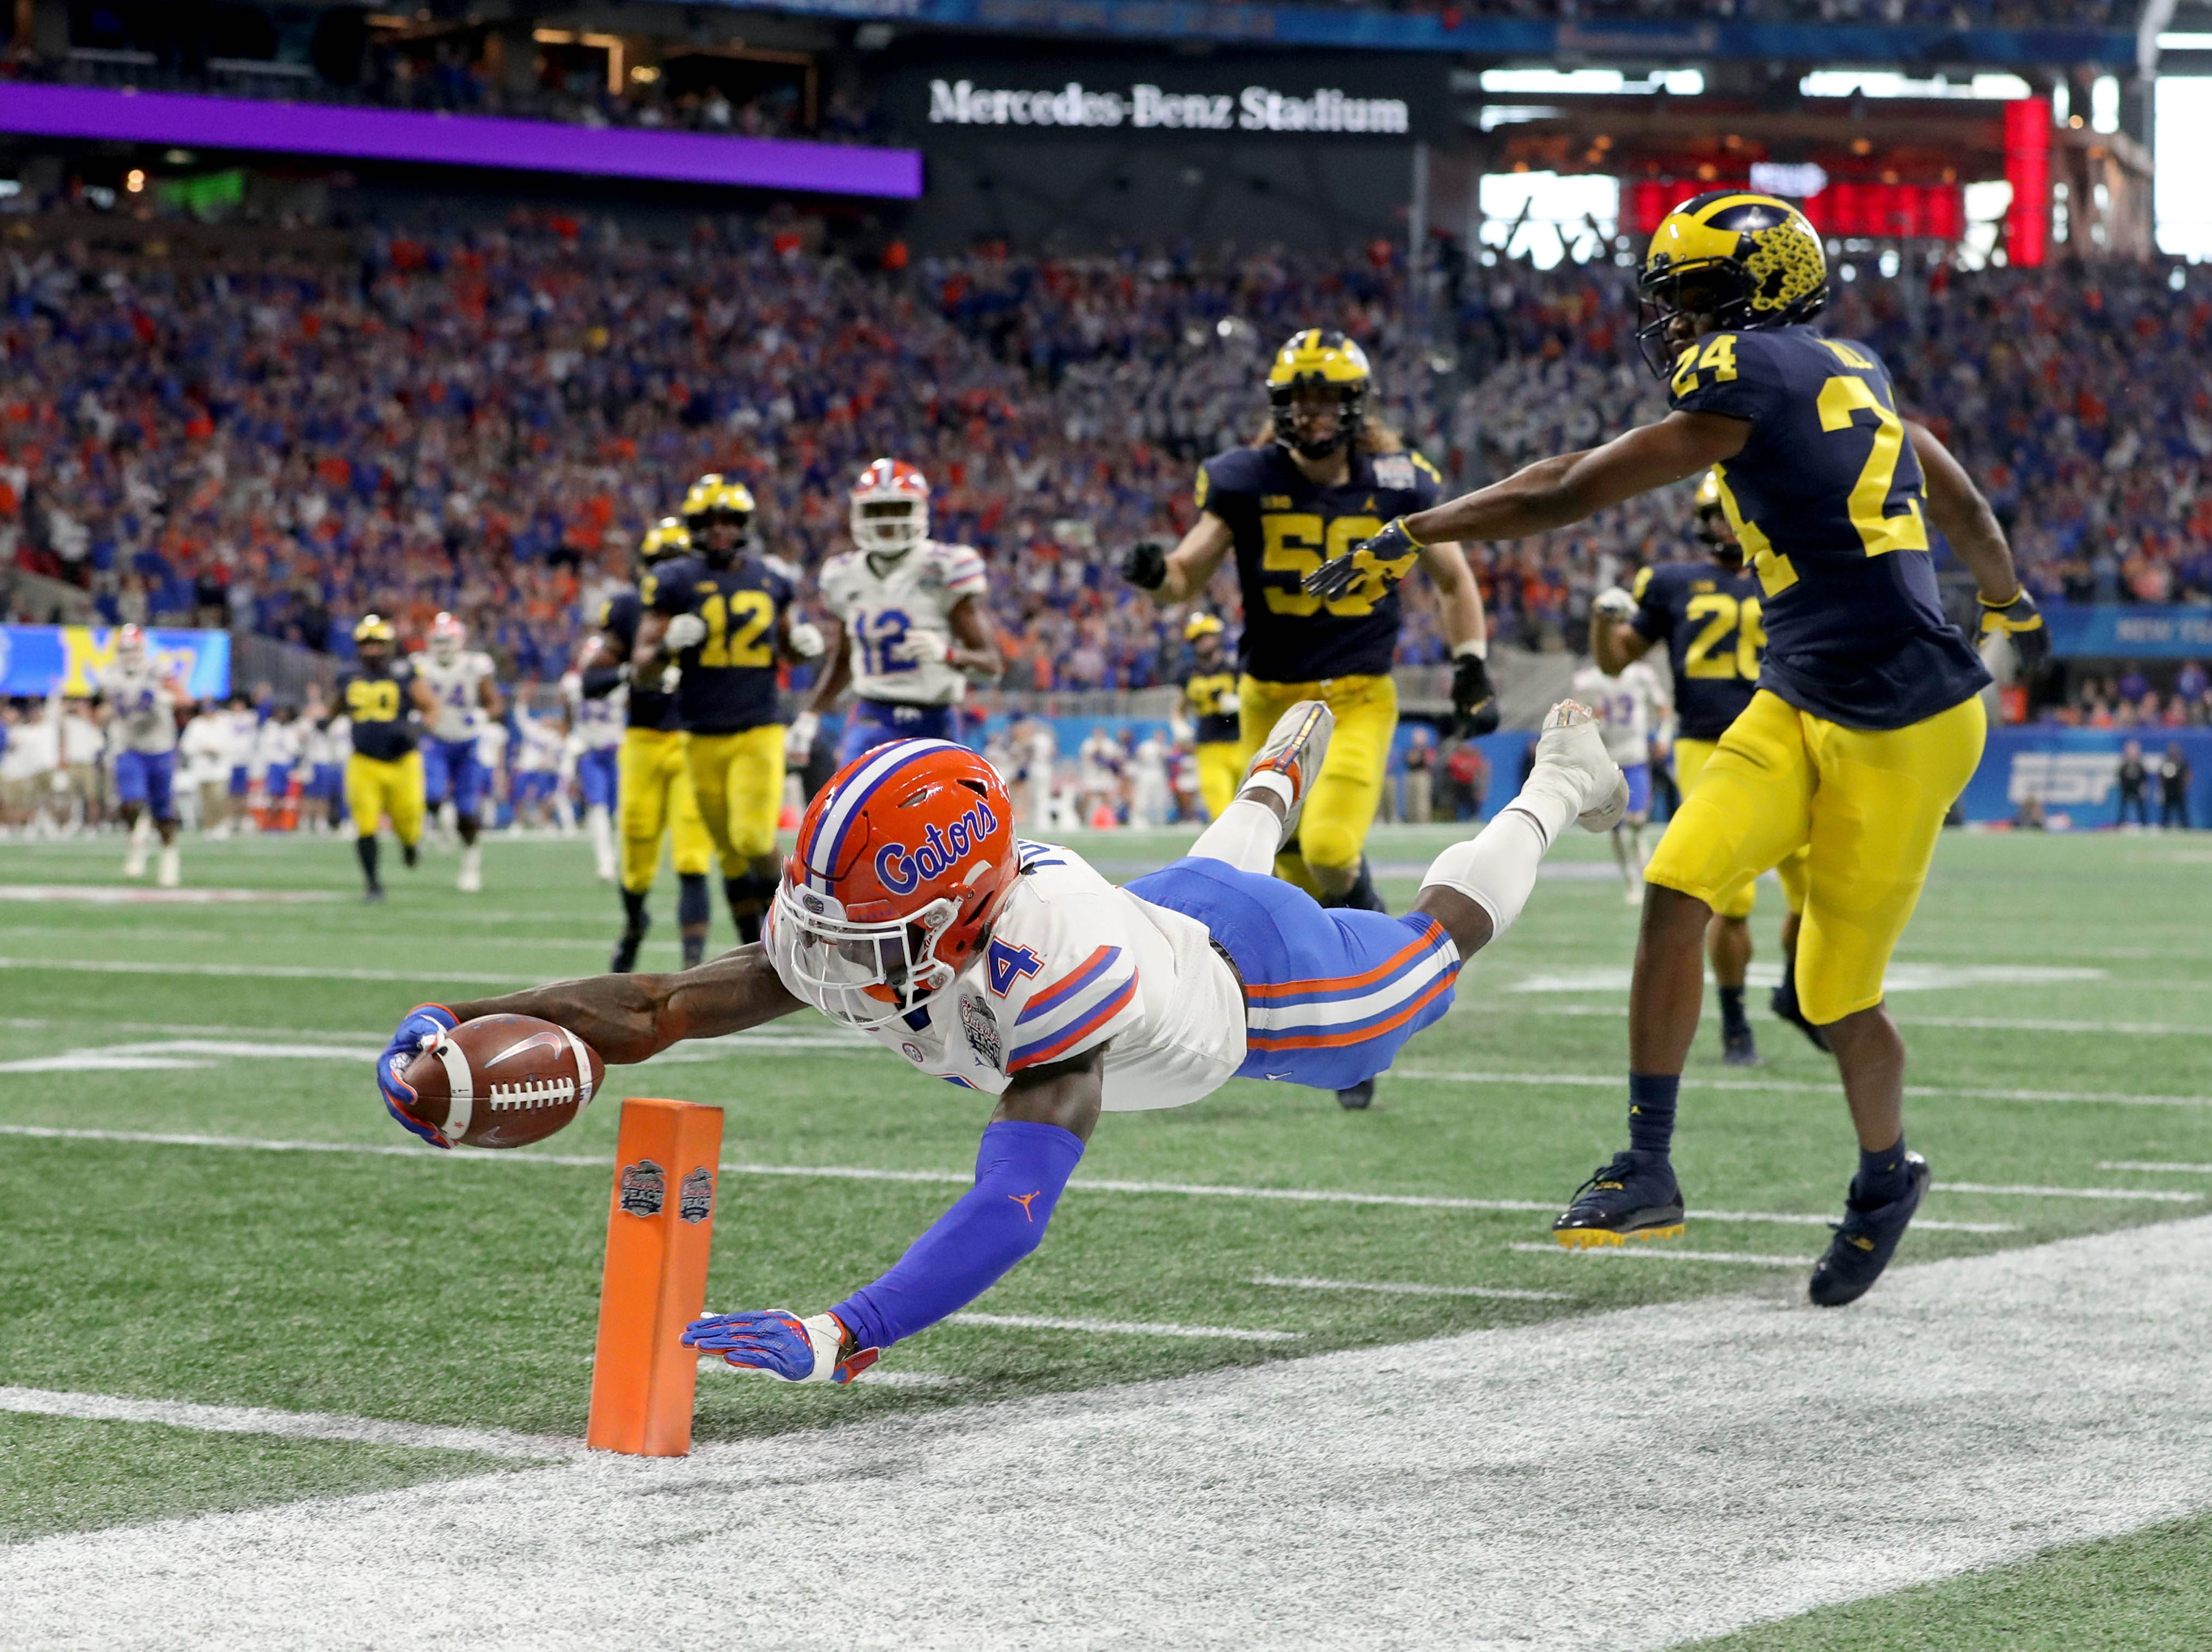 Florida Gators running back Kadarius Toney (4) dives for the end zone against the Michigan Wolverines during the third quarter of the Peach Bowl.